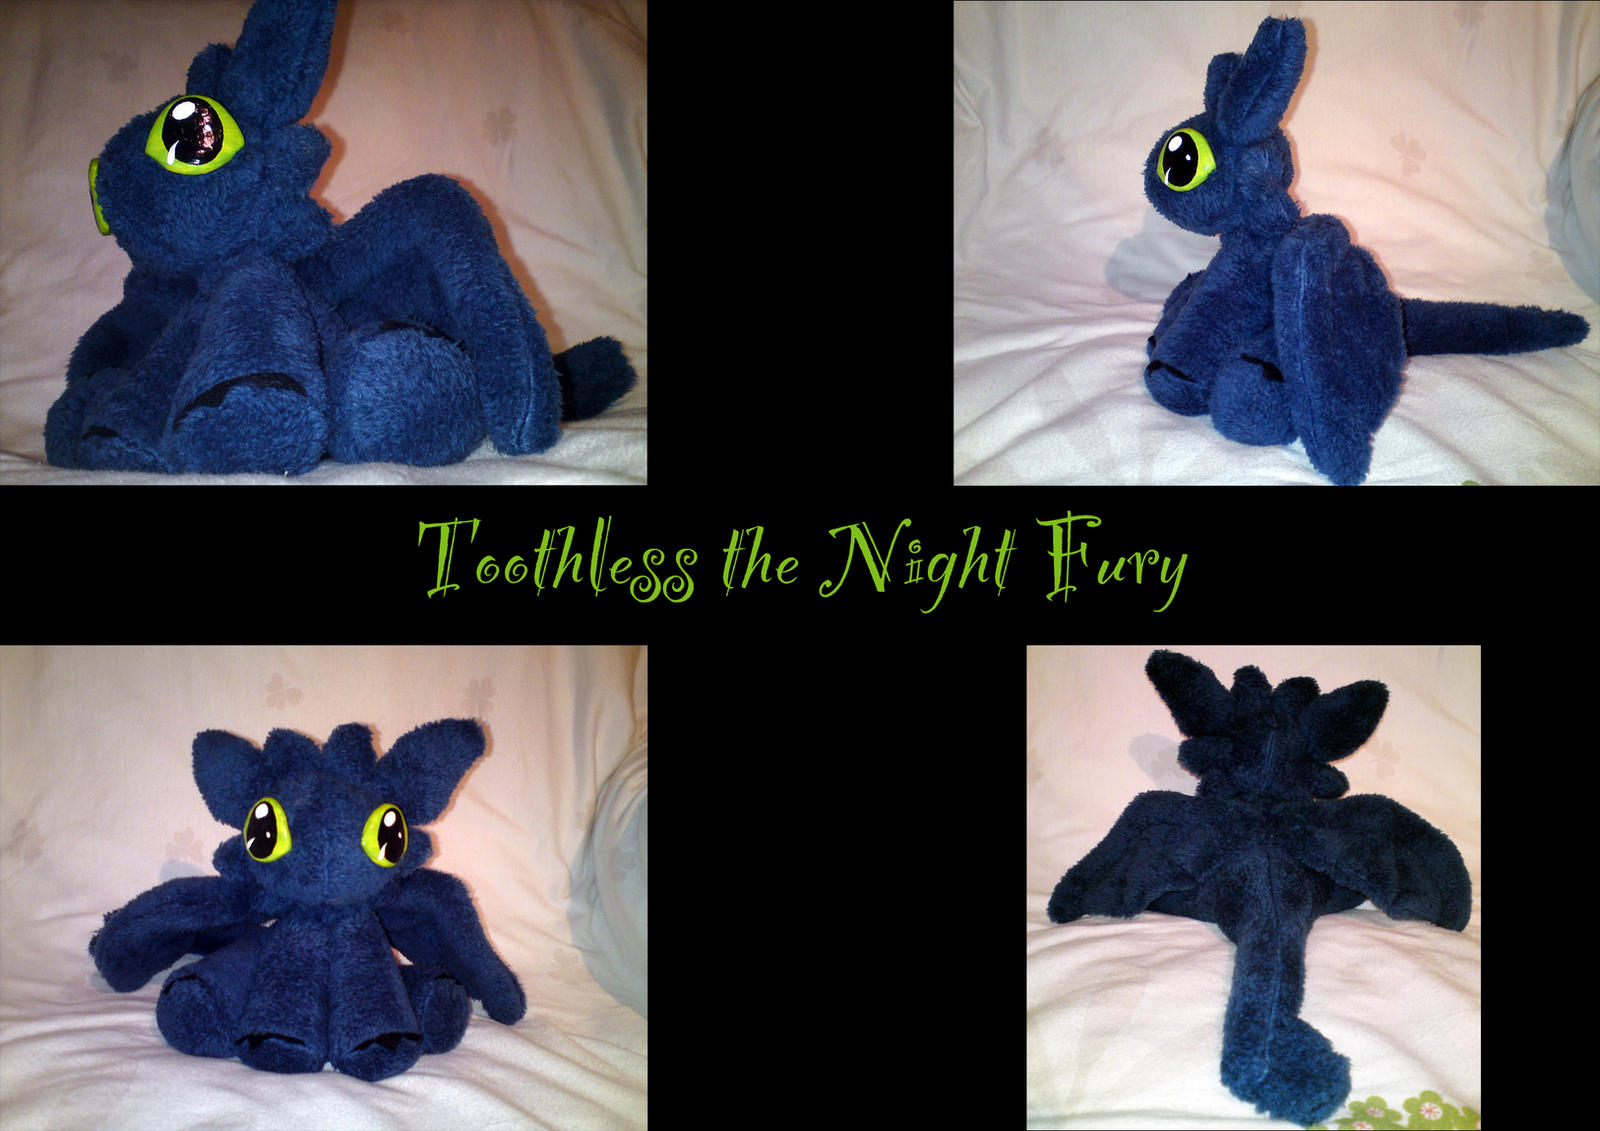 Toothless the night fury - plushie (handmade) by nfasel